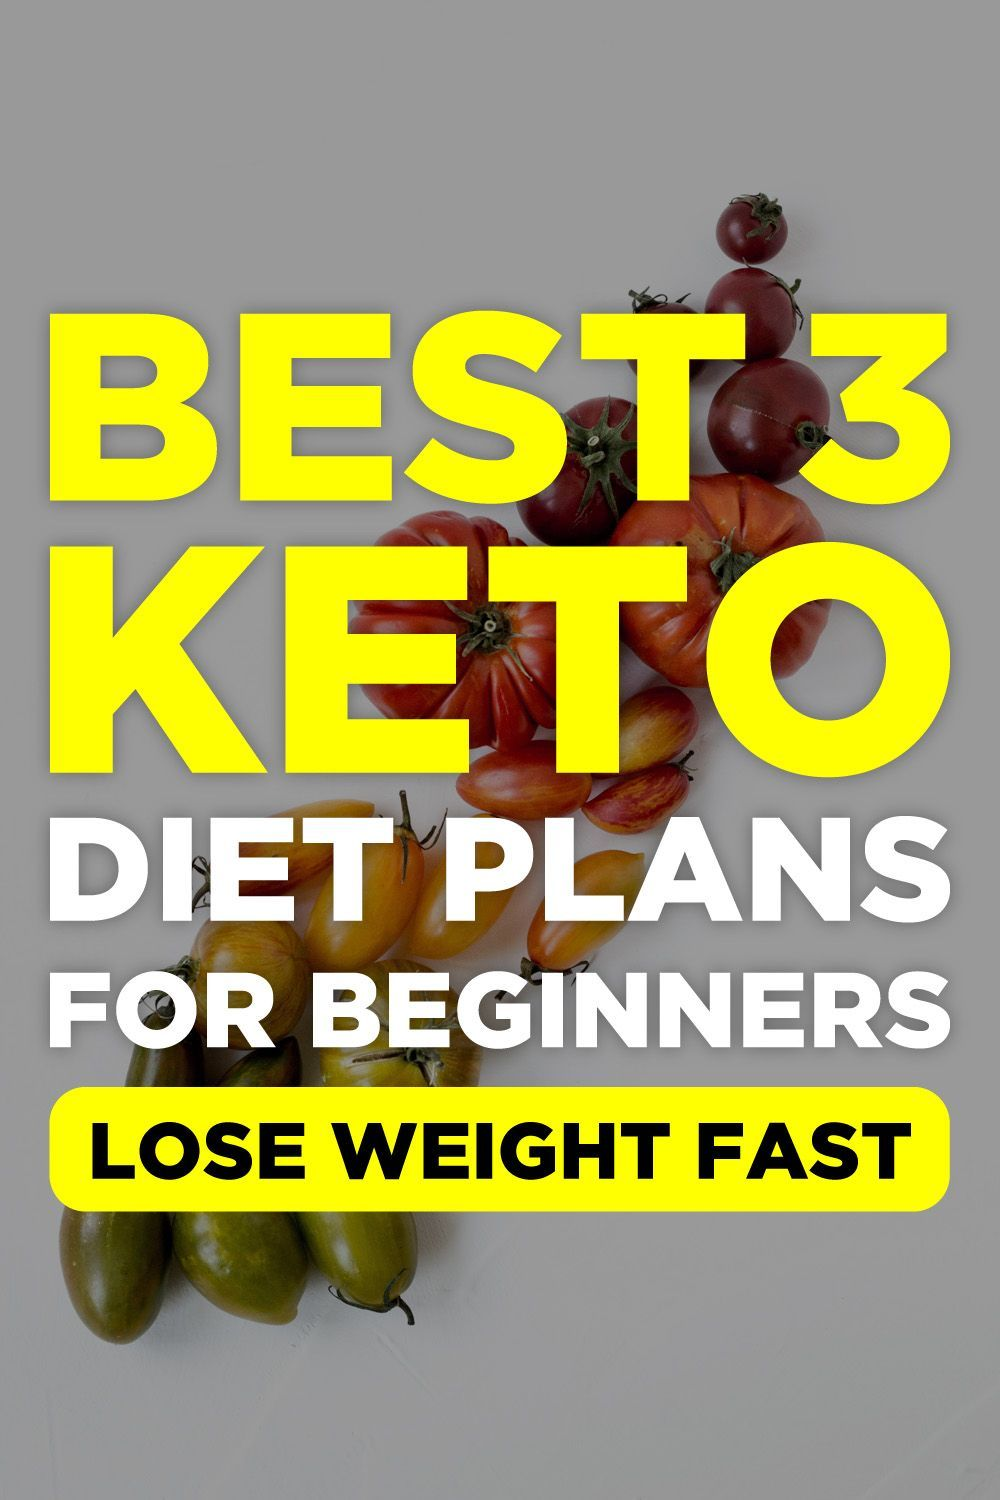 best cardio for weight loss, motivate lose weight, keto pruvit, keto diet joe rogan, keto recipe chicken, makers diet recipes, how to get abs, keto diet delivery, delicious low carb recipes, lose 80 pounds in 6 months, protien diet, weight loss nutrition plan, macros diet recipes, smoothies to lose weight, fat burning workout belly, how to loose belly fat for women, keto diet app, macros for low carb diet, low fat cheeses, want to lose weight, atkins casserole, #protiendiet b